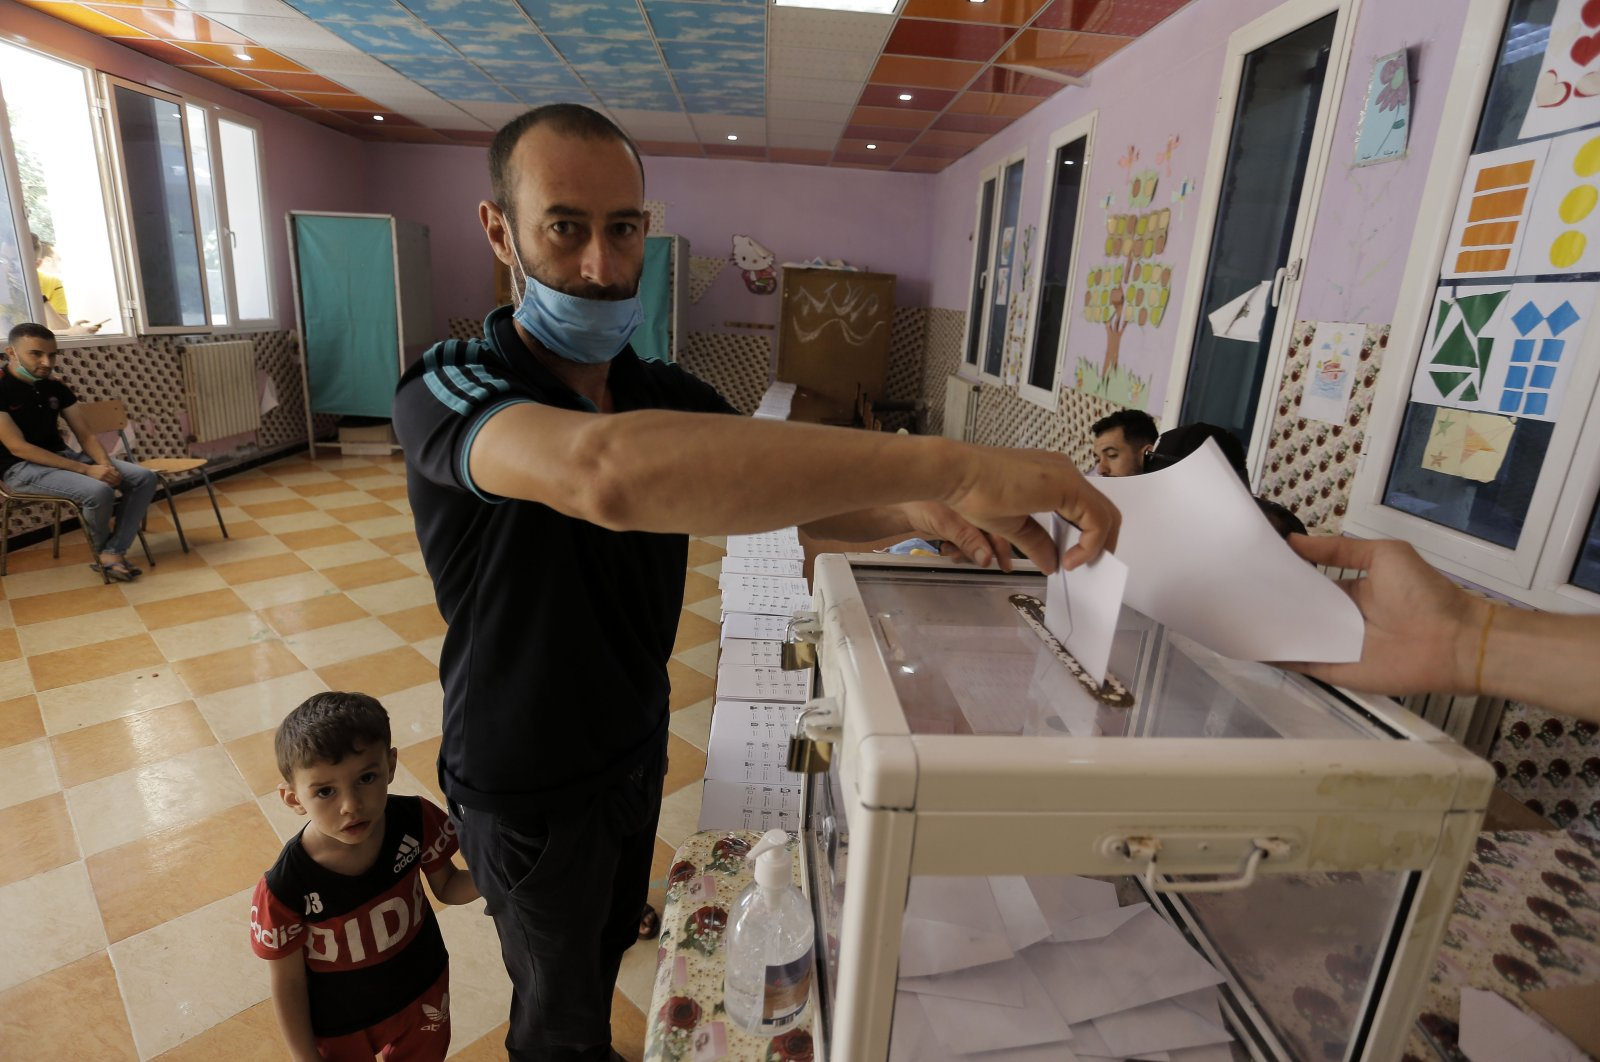 A man casts his vote in a polling station in the country's first legislative elections since the ouster of former President Abdelaziz Bouteflika, in Algiers, Algeria, June 12, 2021. (AP Photo)